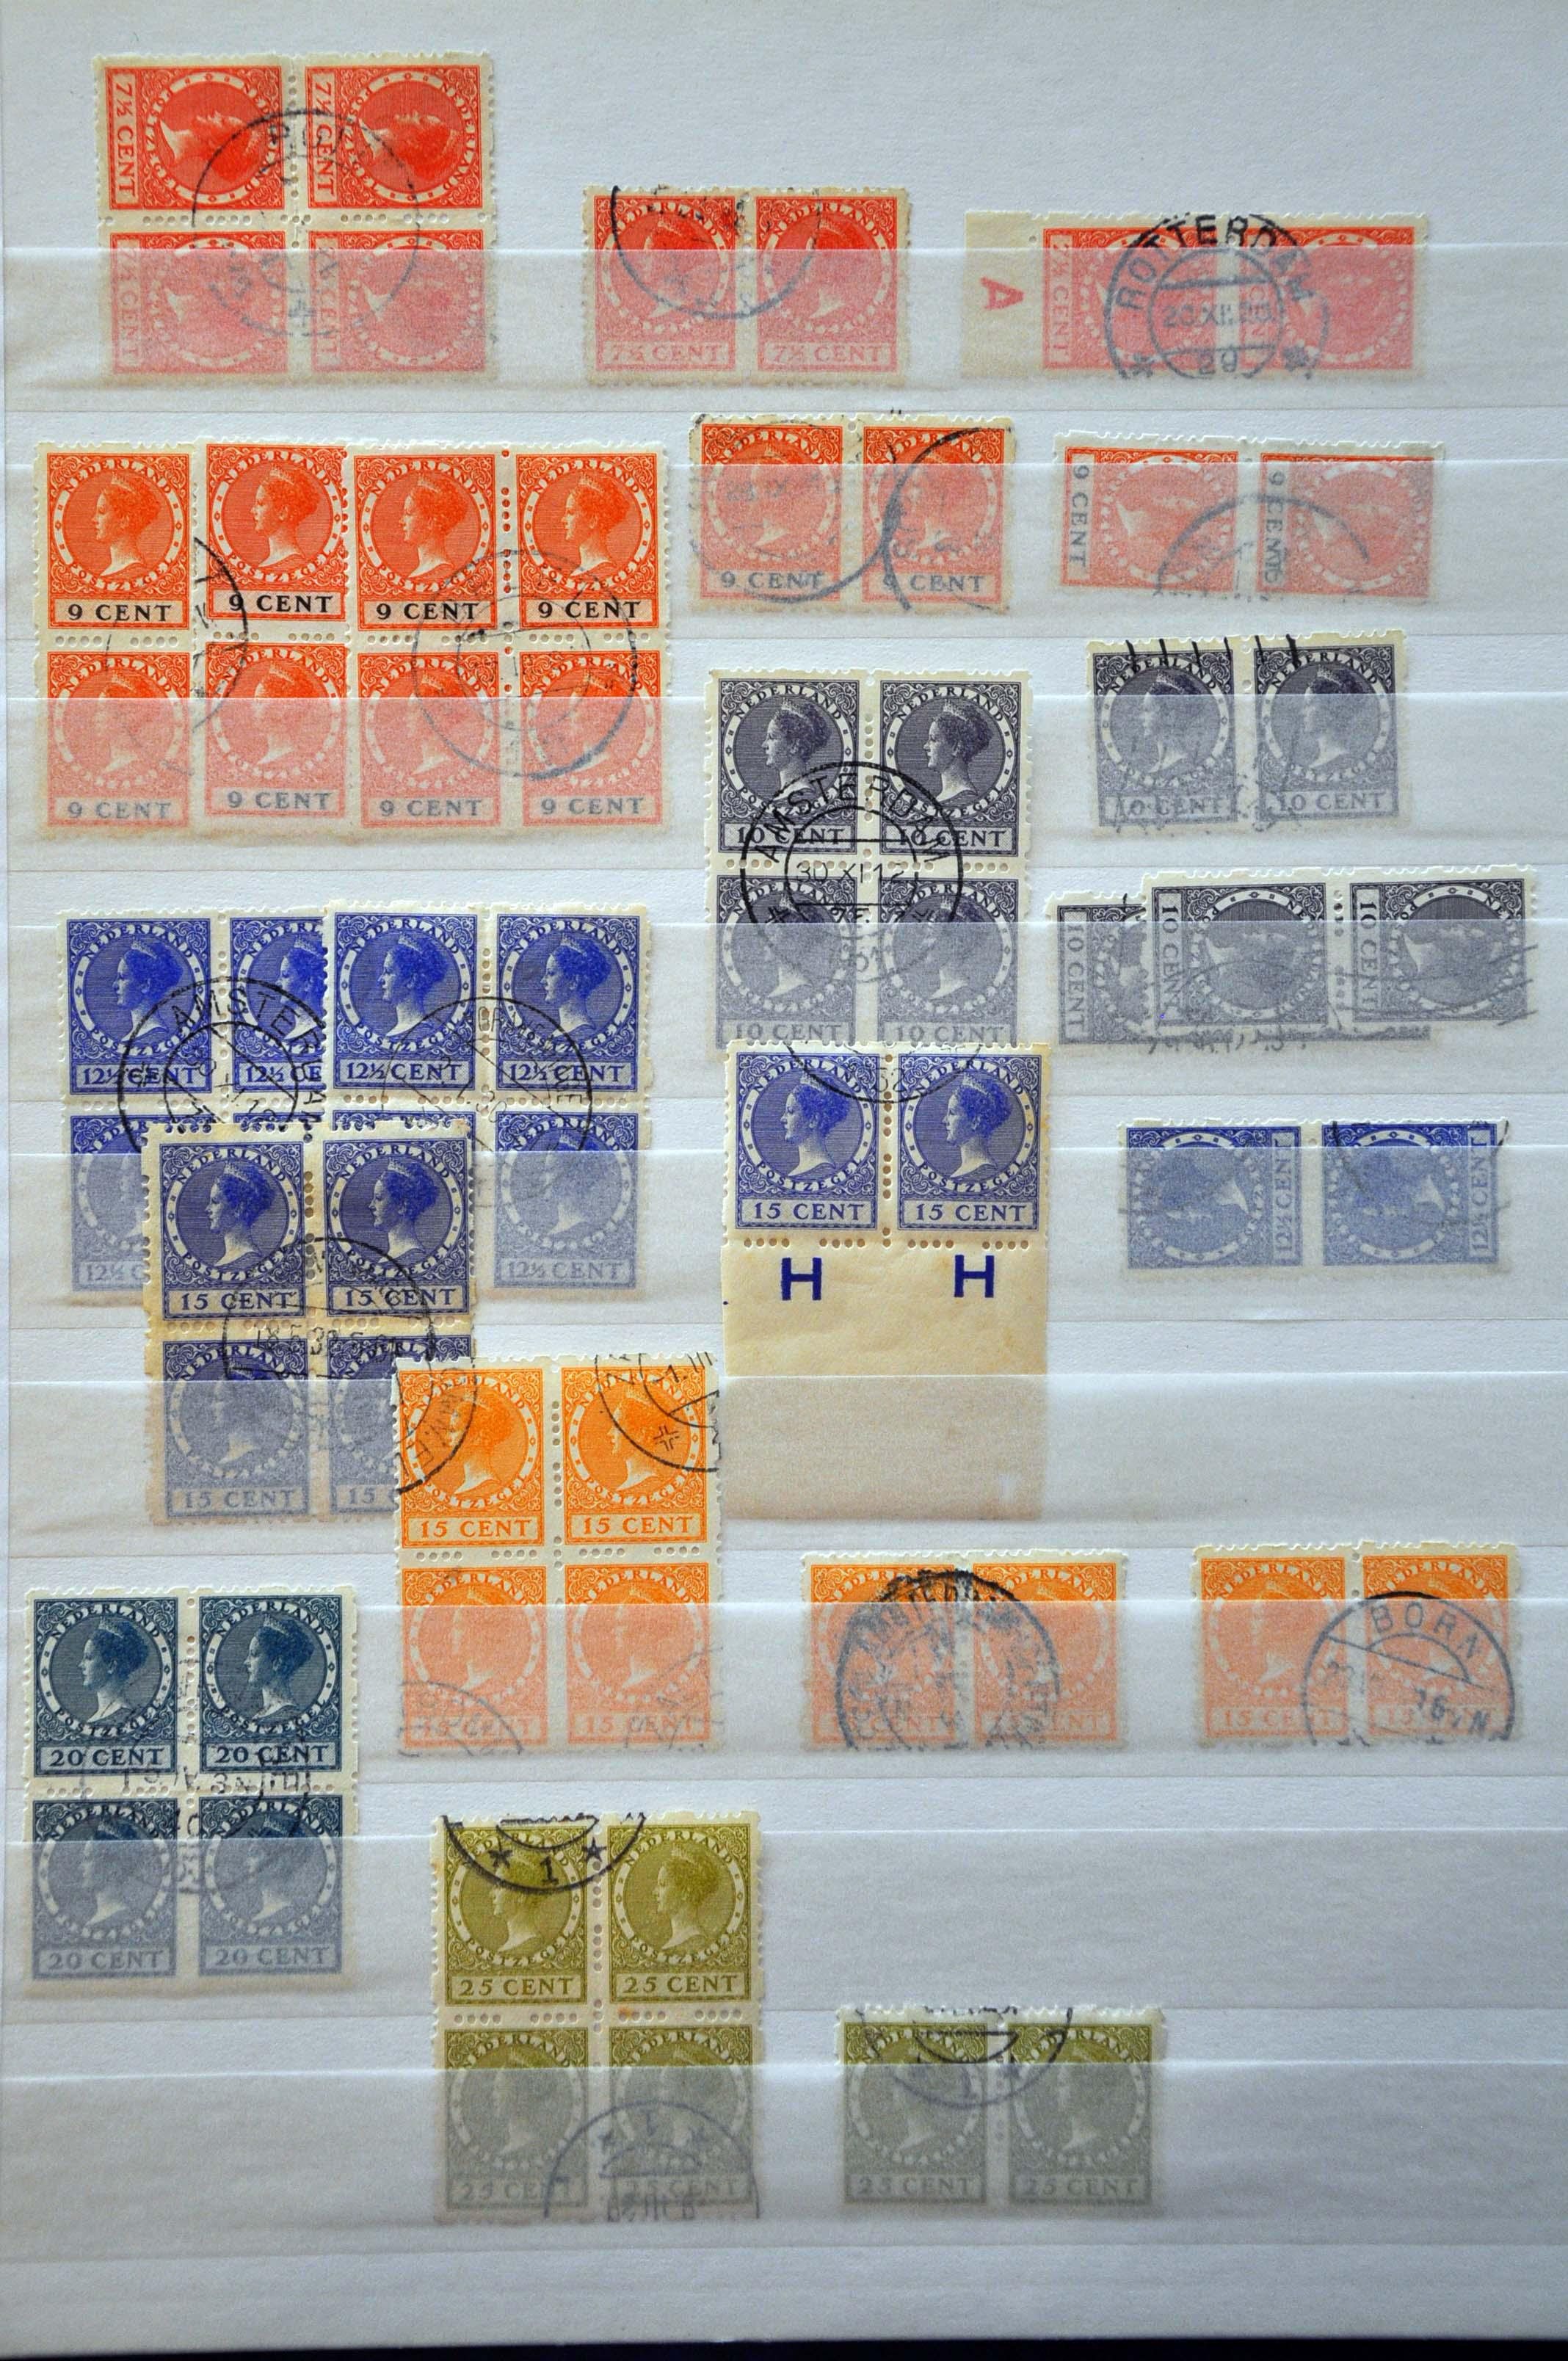 Lot 1637 - Netherlands and former colonies Netherlands -  Corinphila Veilingen Auction 250-253 - Day 2 - Coins, medals, Netherlands and former colonies